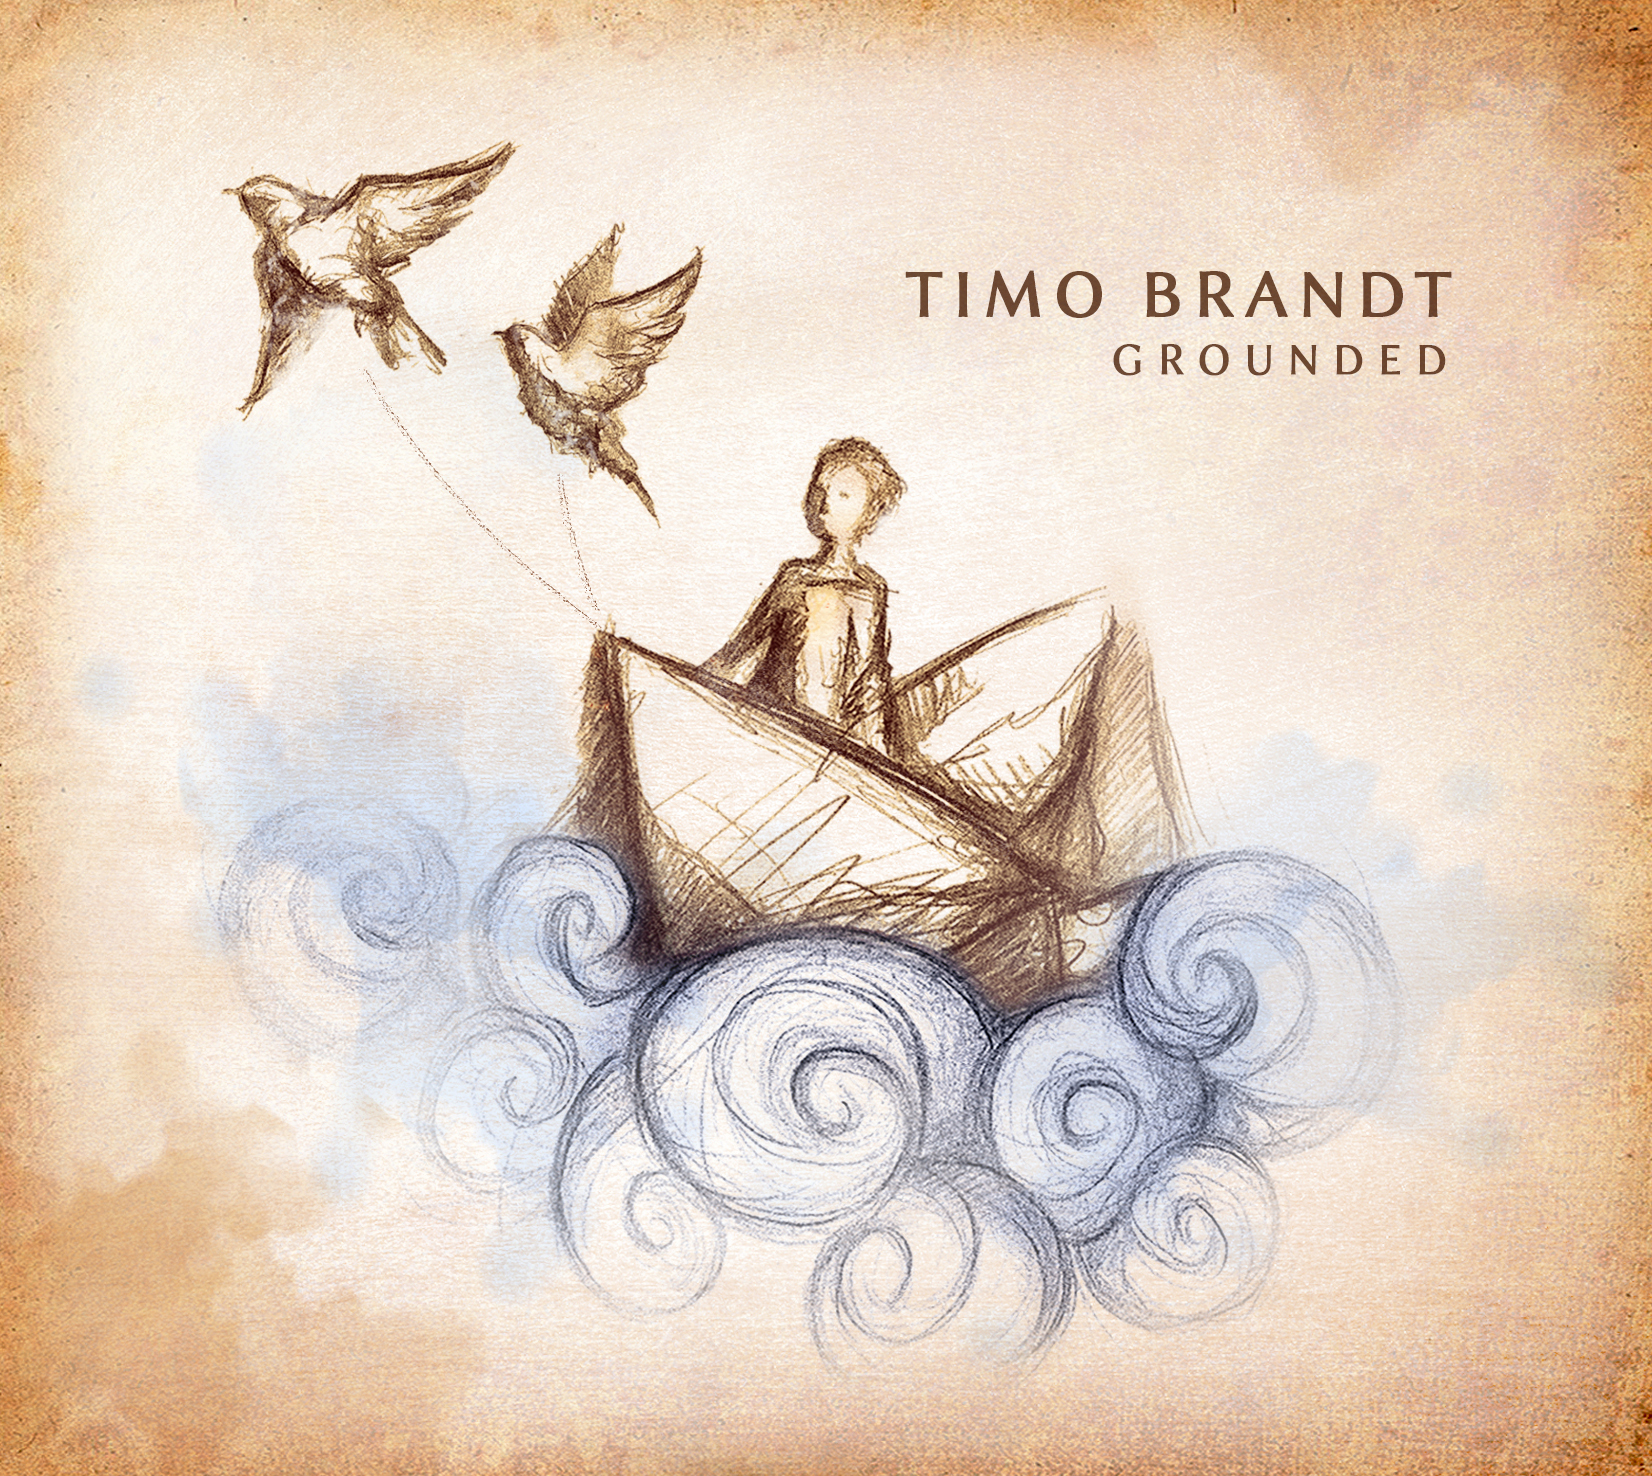 Grounded (CD, signed) - Timo Brandt